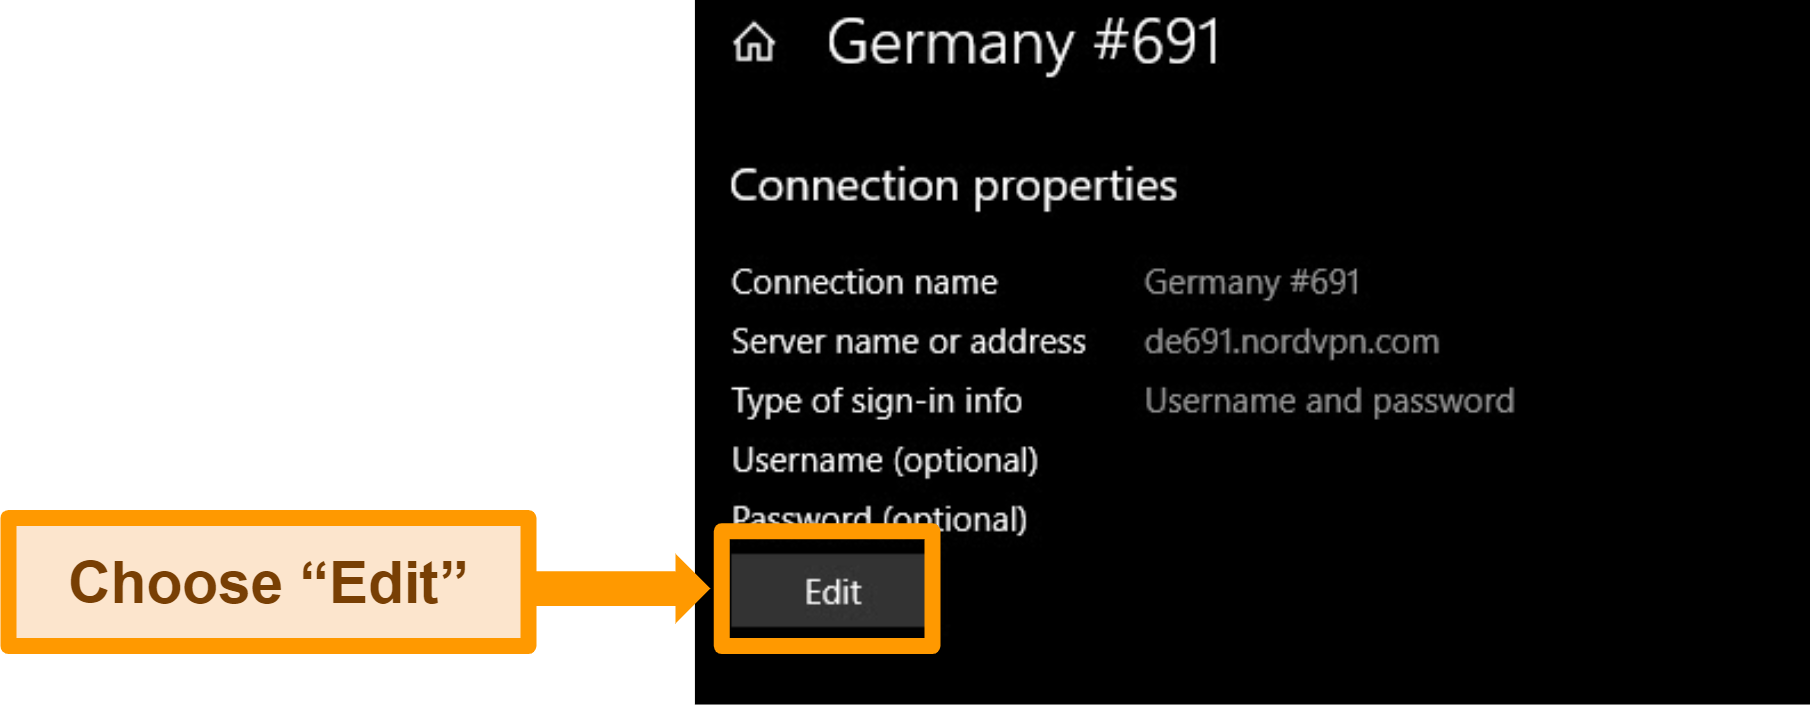 Screenshot of the settings overview of a manual VPN configuration in the Windows VPN menu